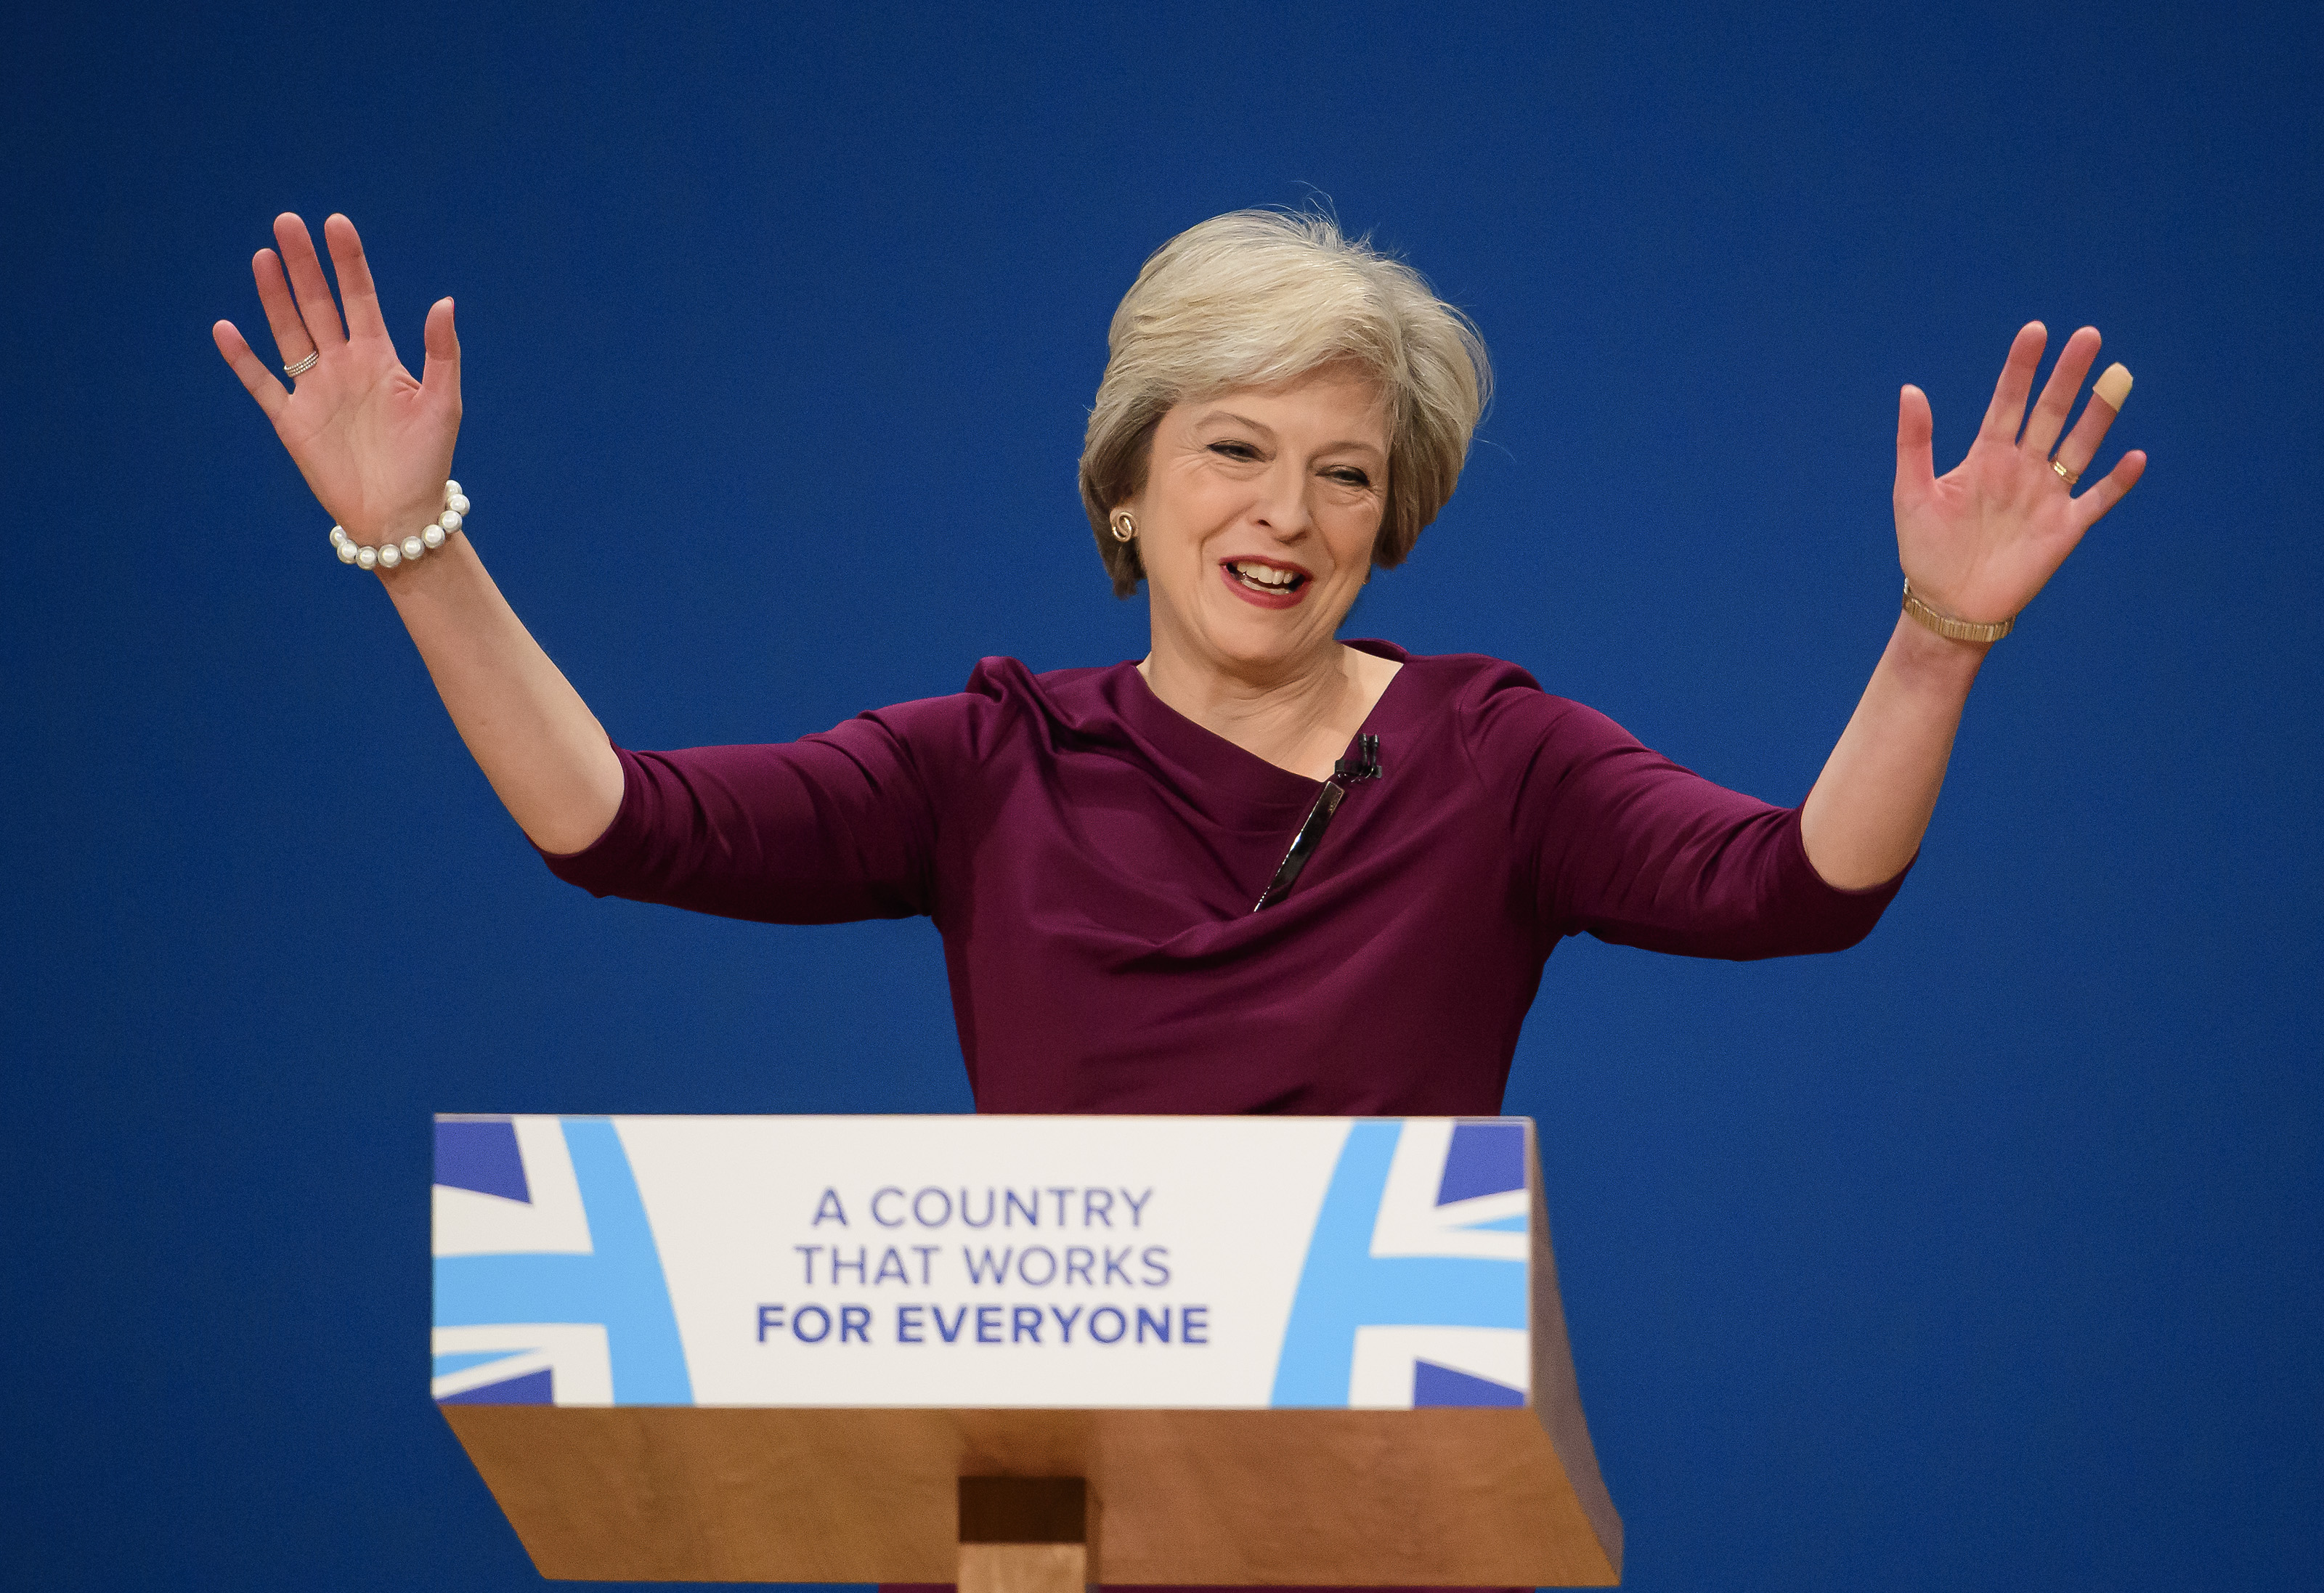 British prime minister Theresa May delivering her leader's speech on the last day of the Conservative Party Conference